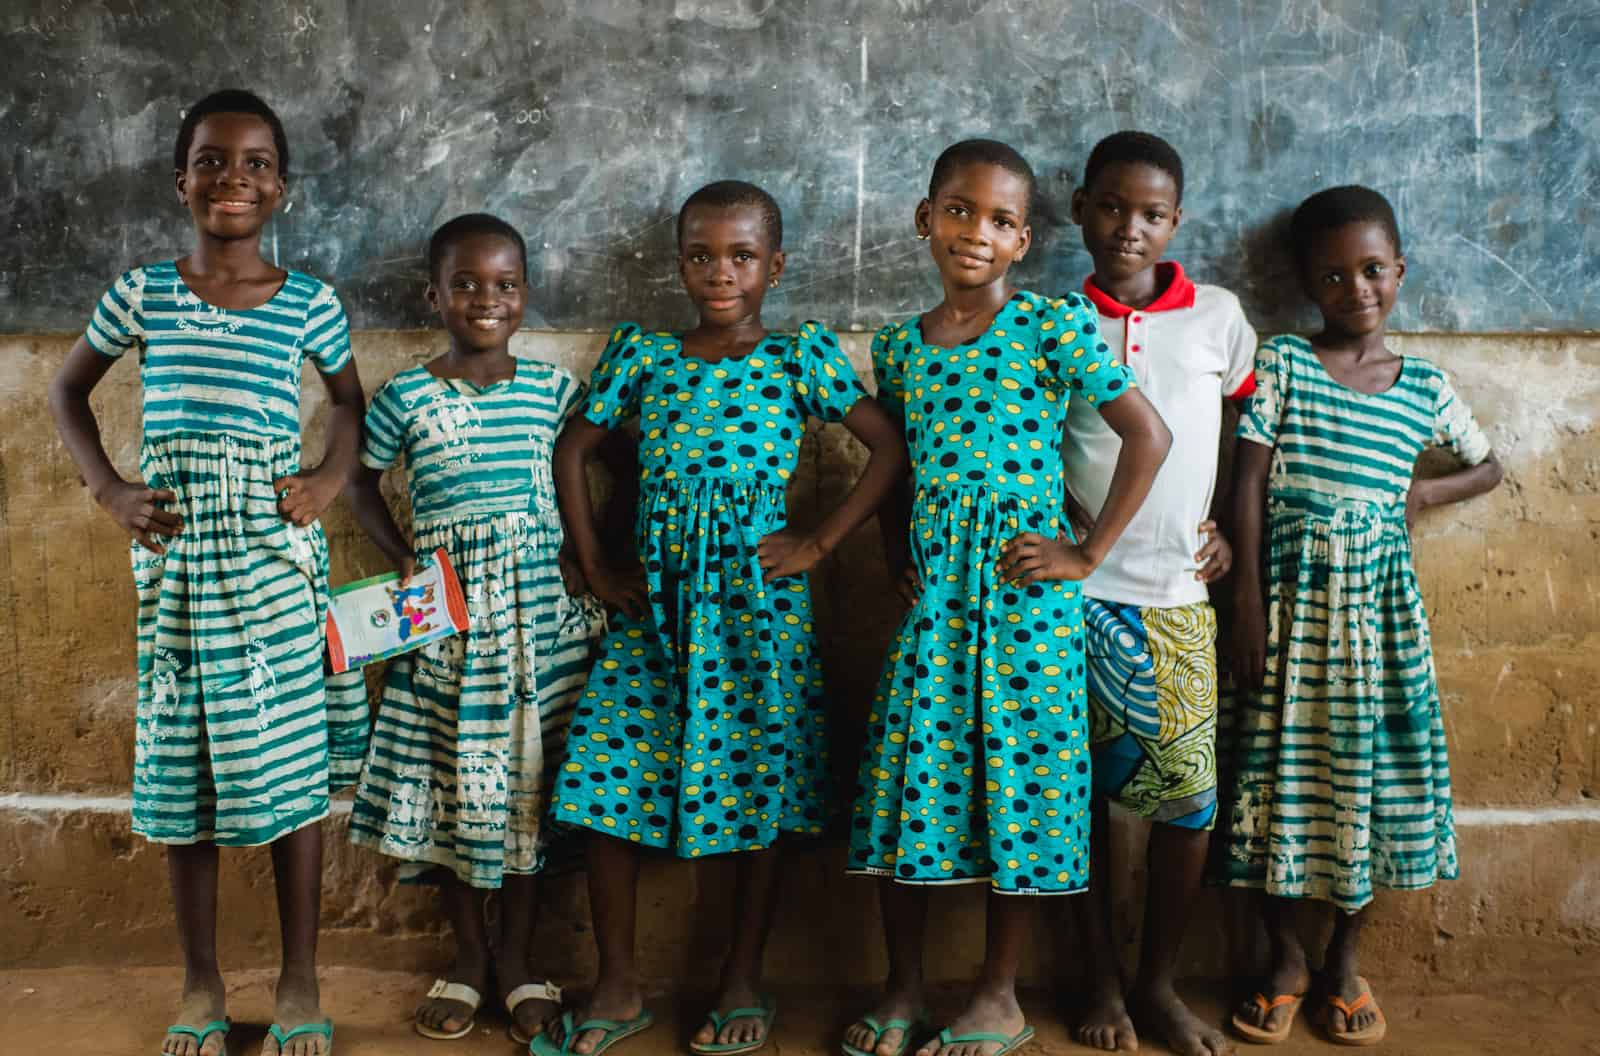 Fighting period poverty: Six girls in colorful patterned dresses stand in front of a chalkboard.